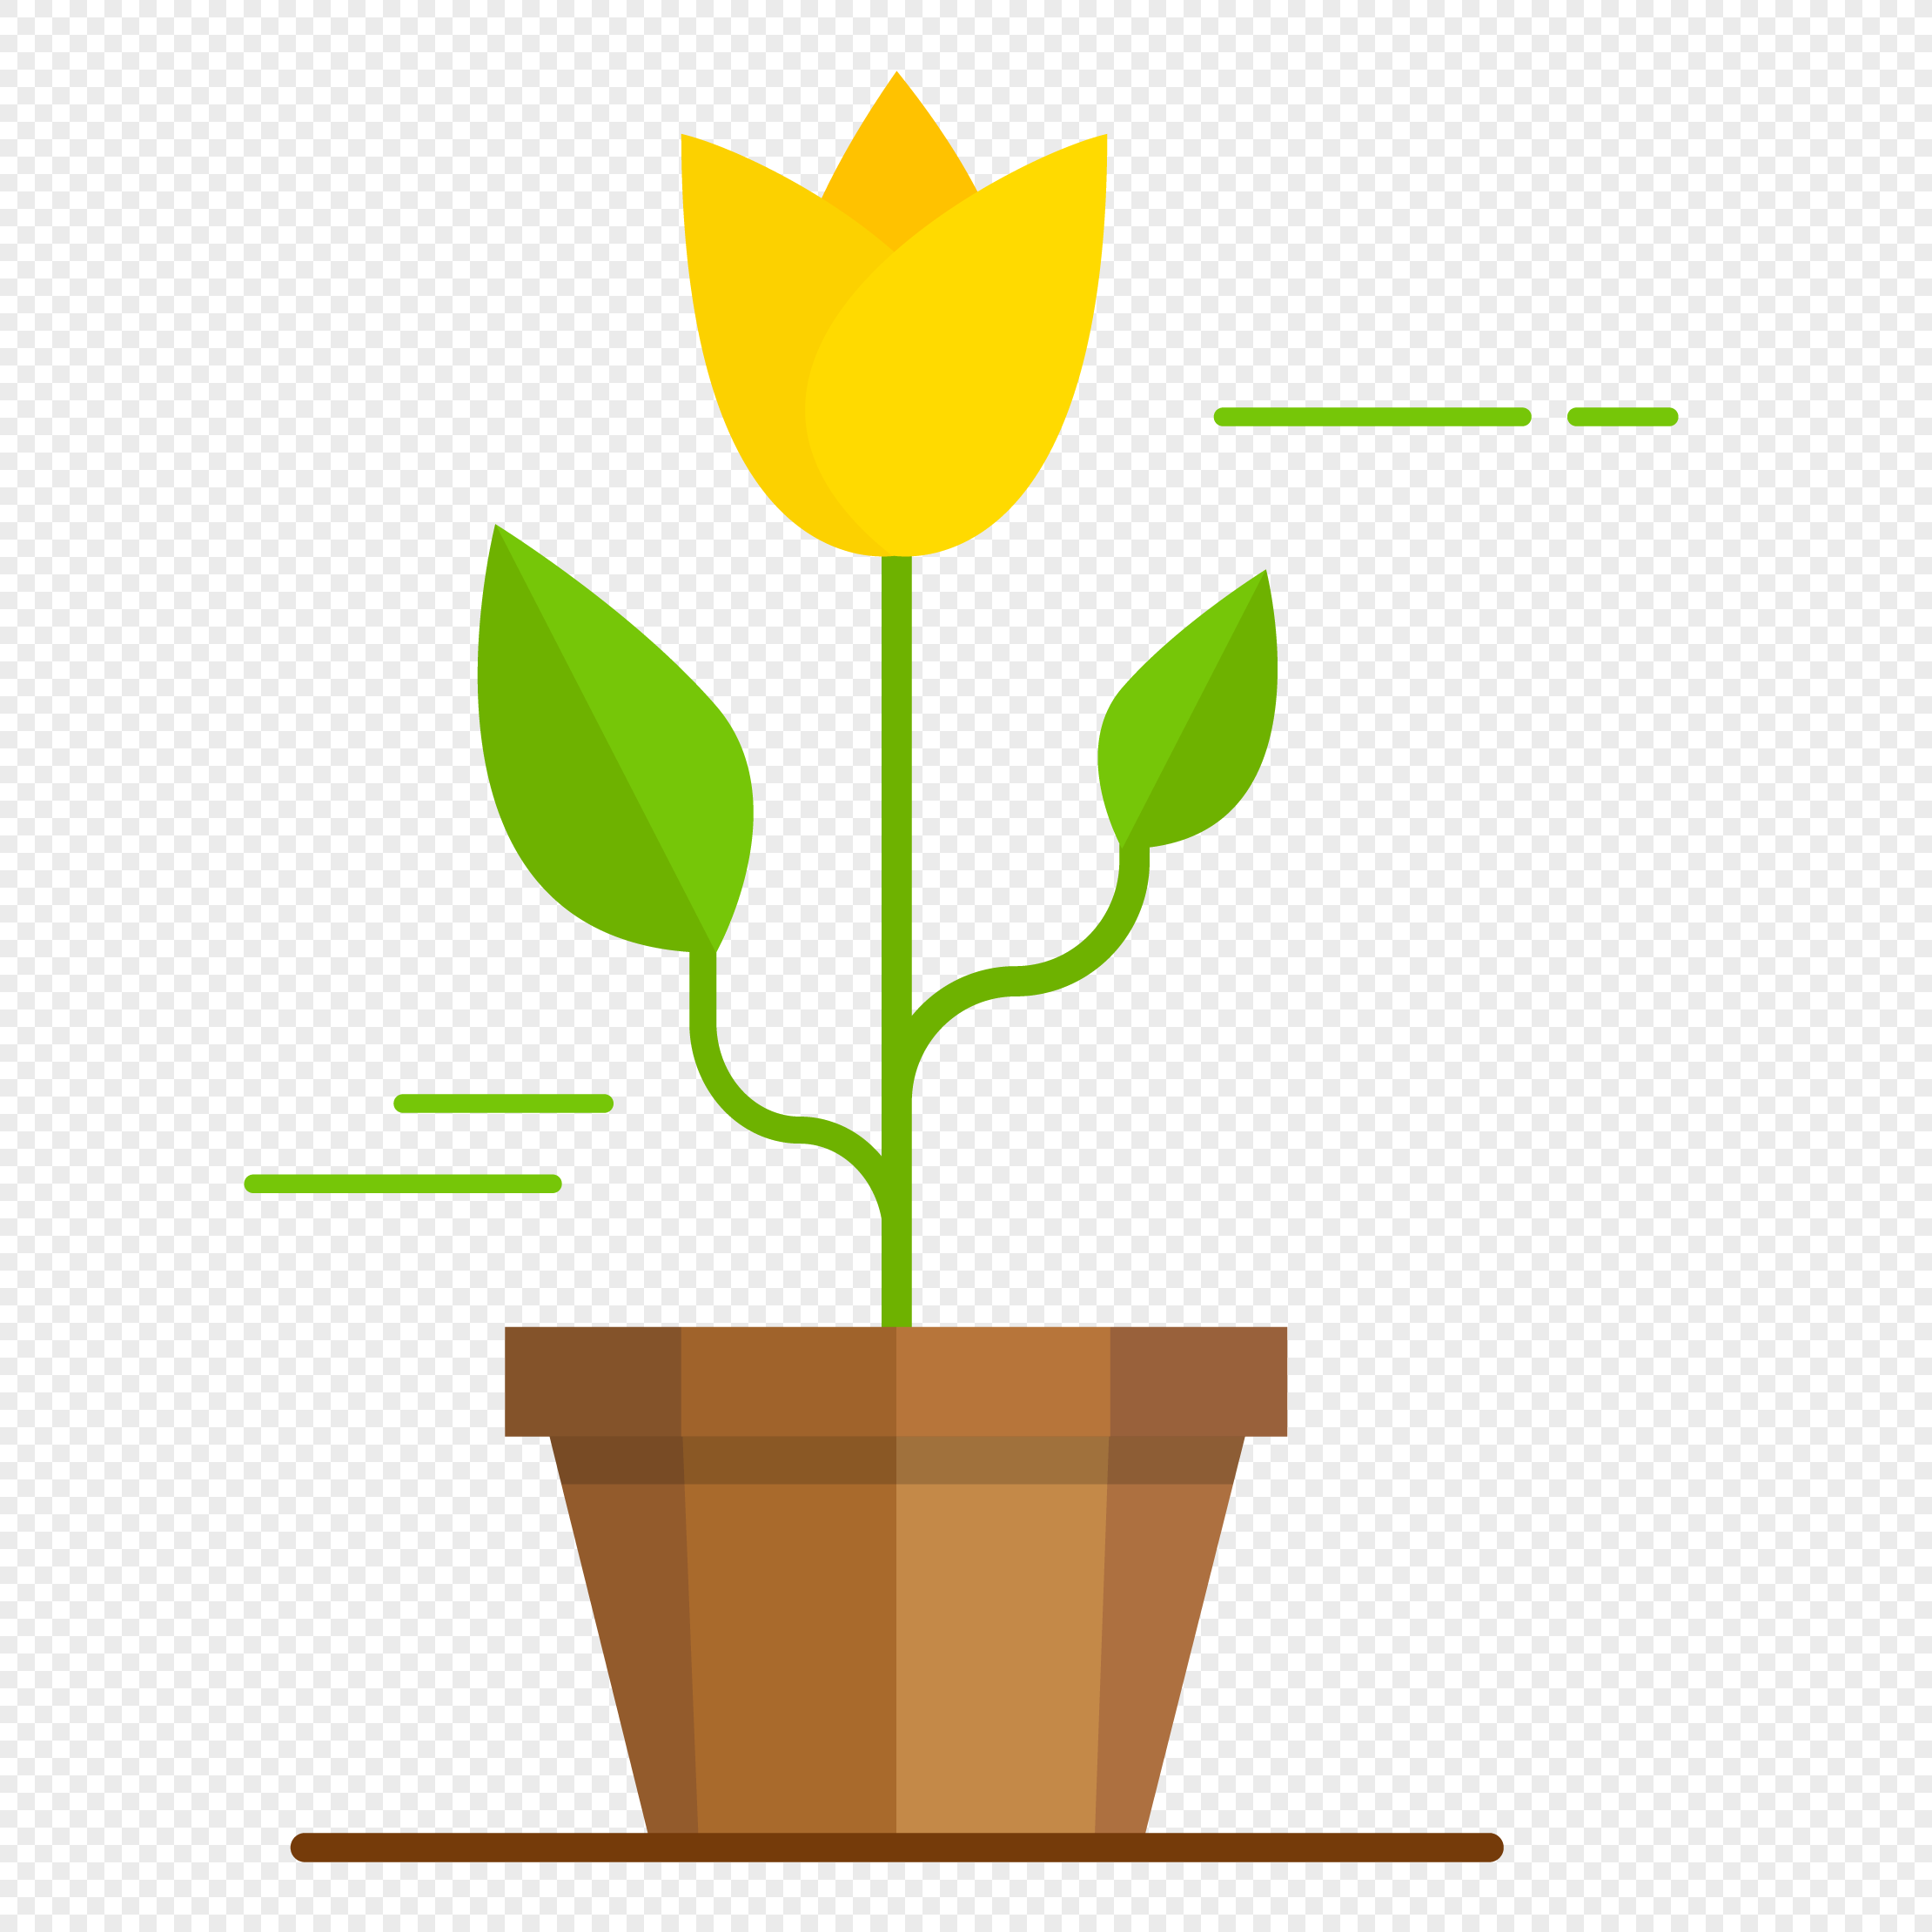 Yellow Flower Icon Png Imagepicture Free Download 400558883lovepik